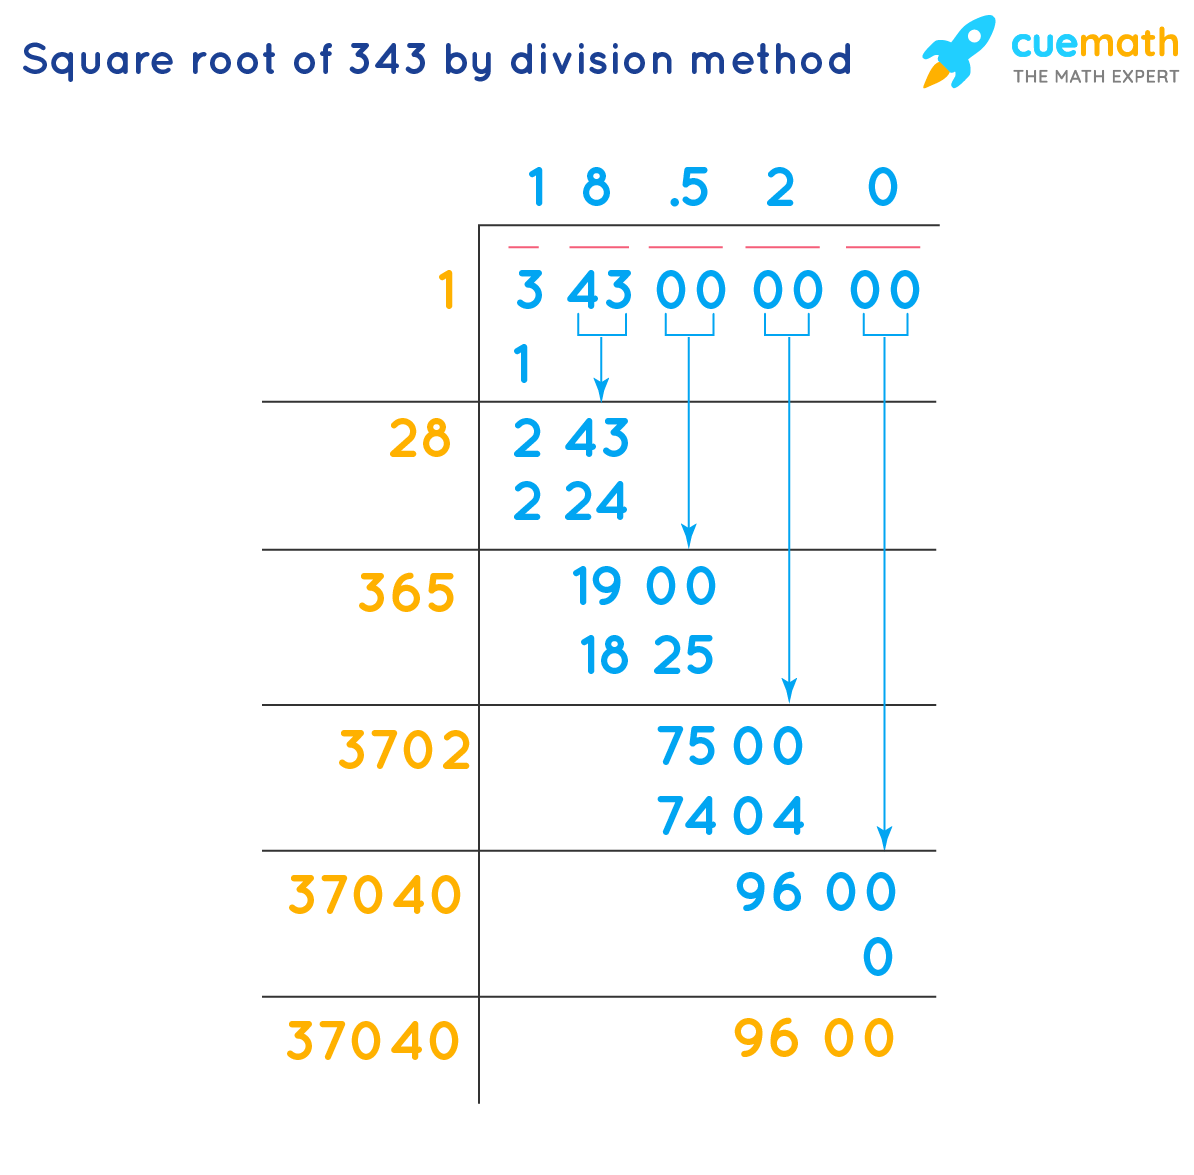 square root of 343 by division method